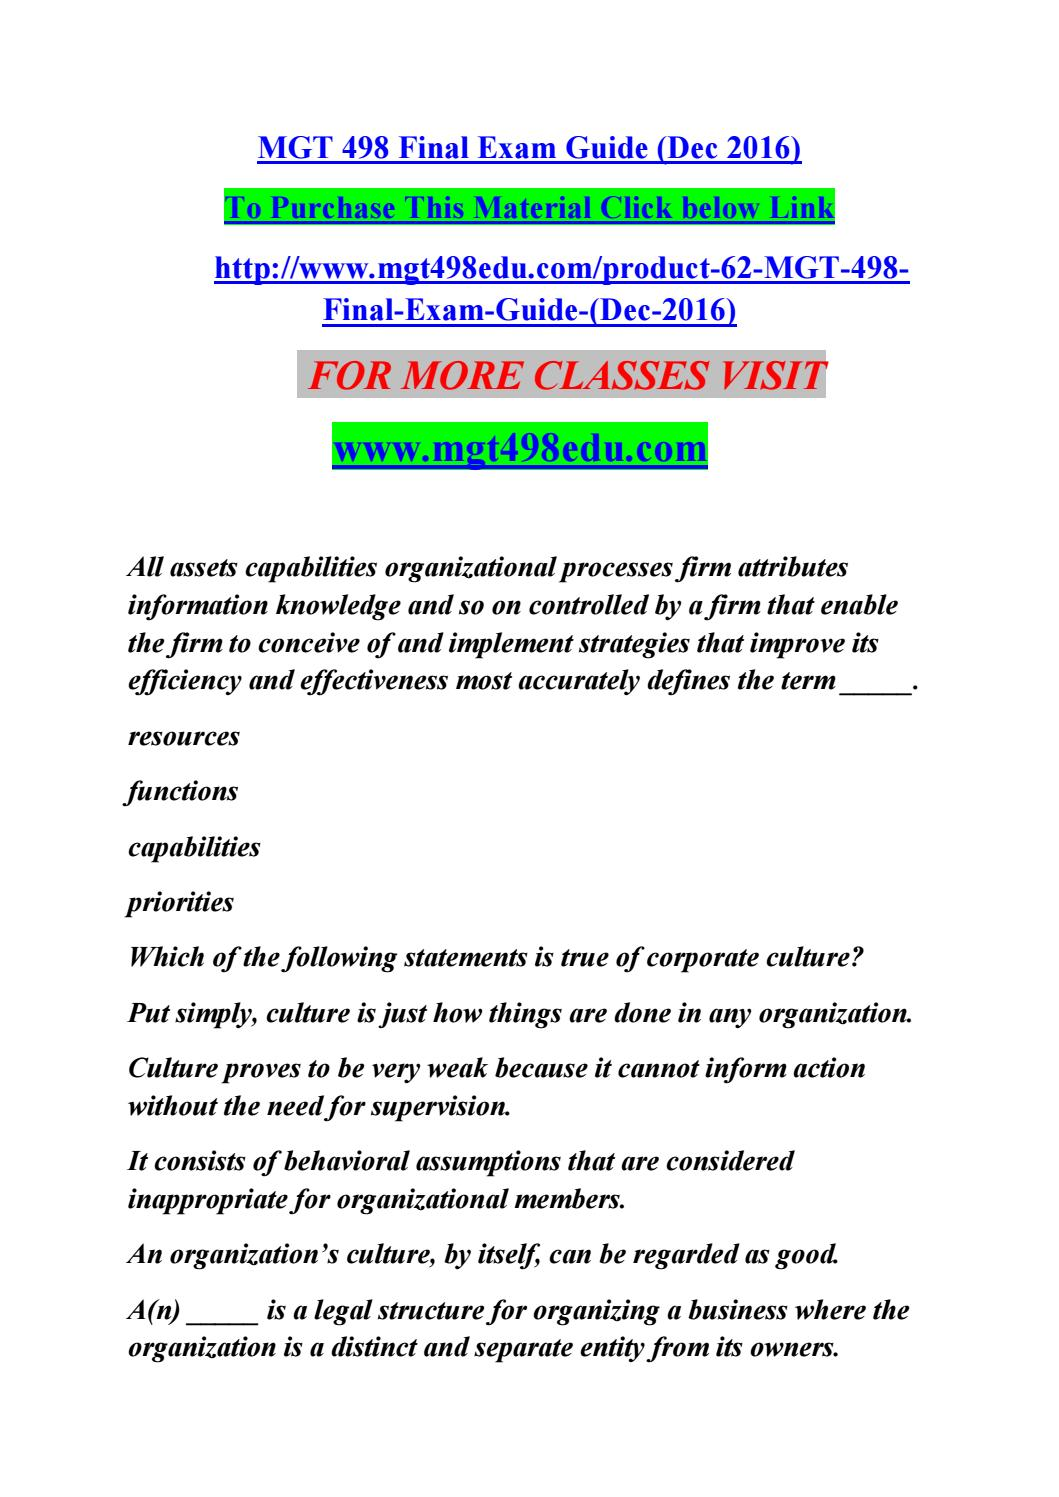 mgt 498 final exam guide mgt498edu com by nadkeirkck issuu